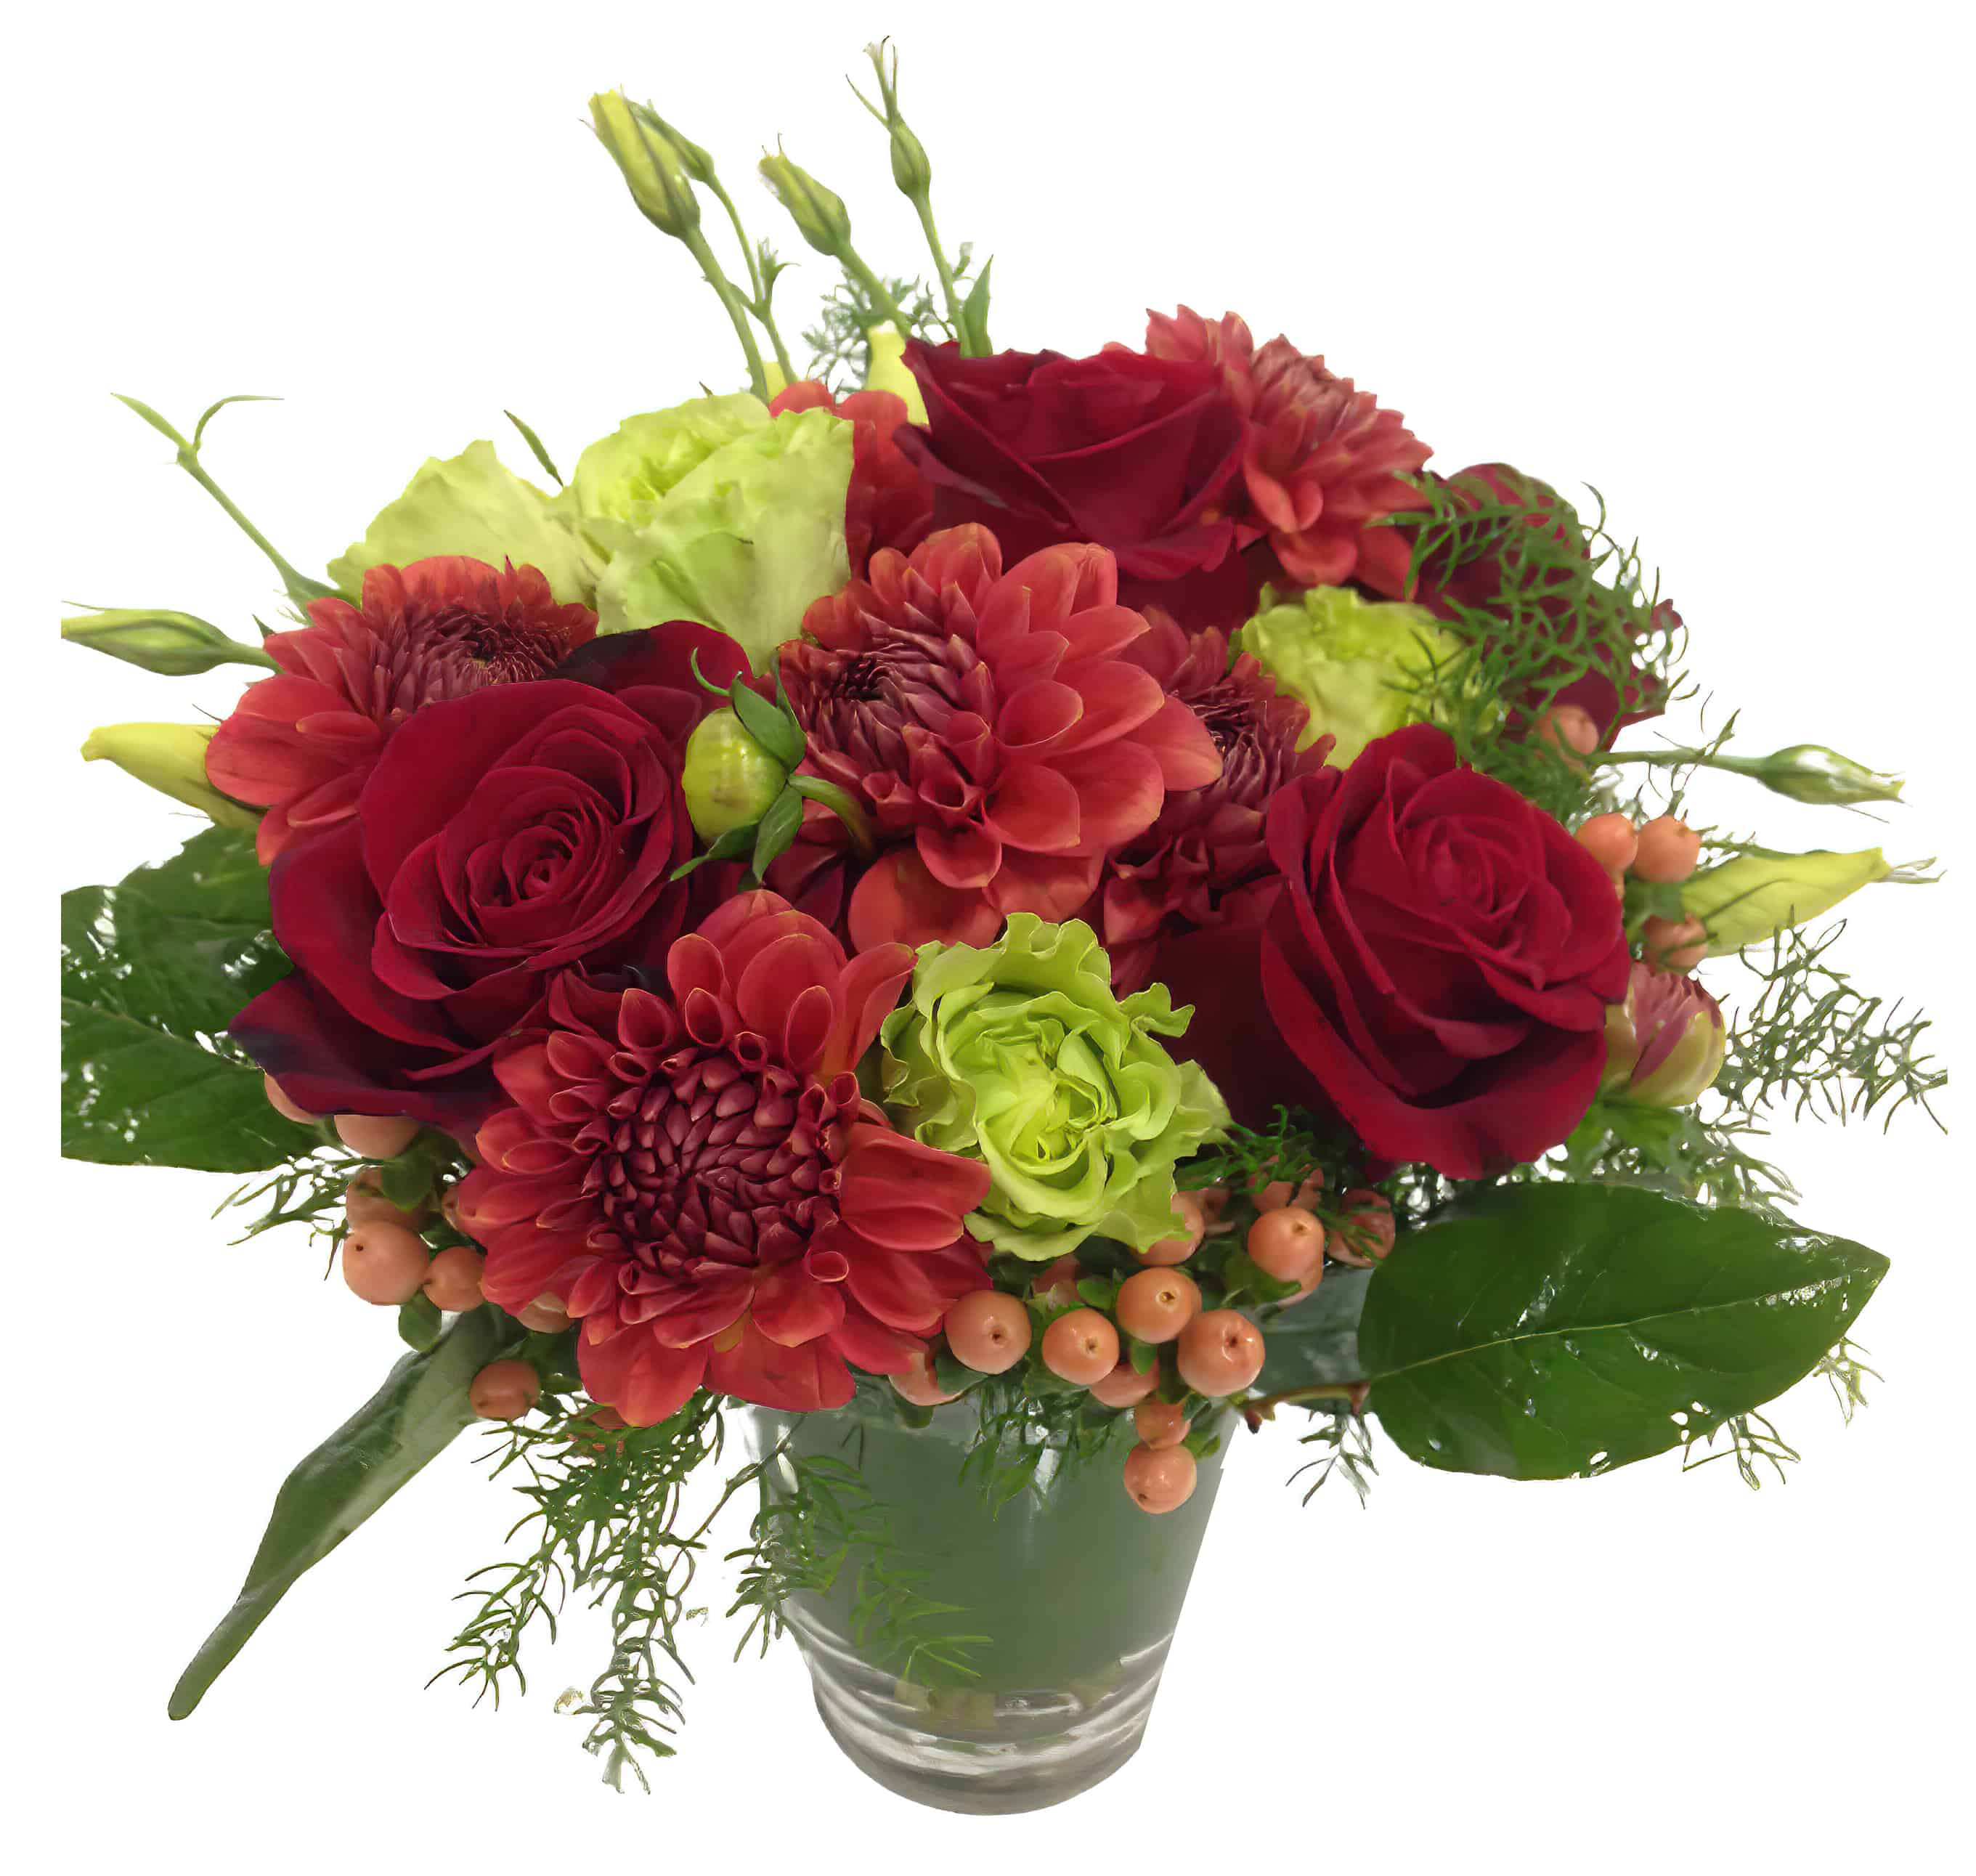 Raspberry Tea Flower Arrangement